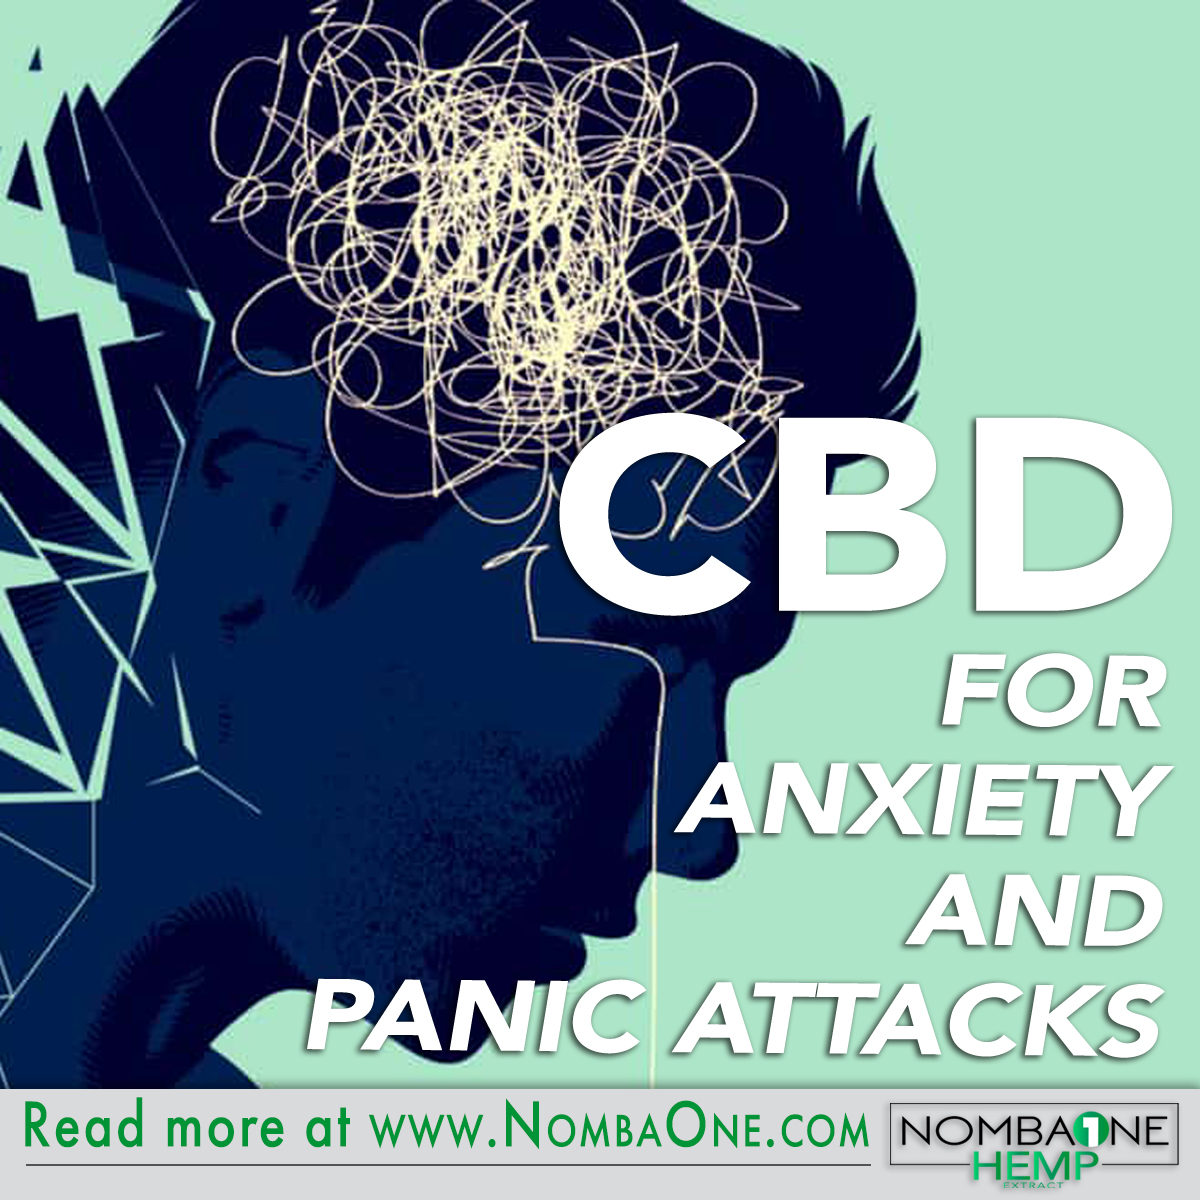 CBD-for-anxiety-image